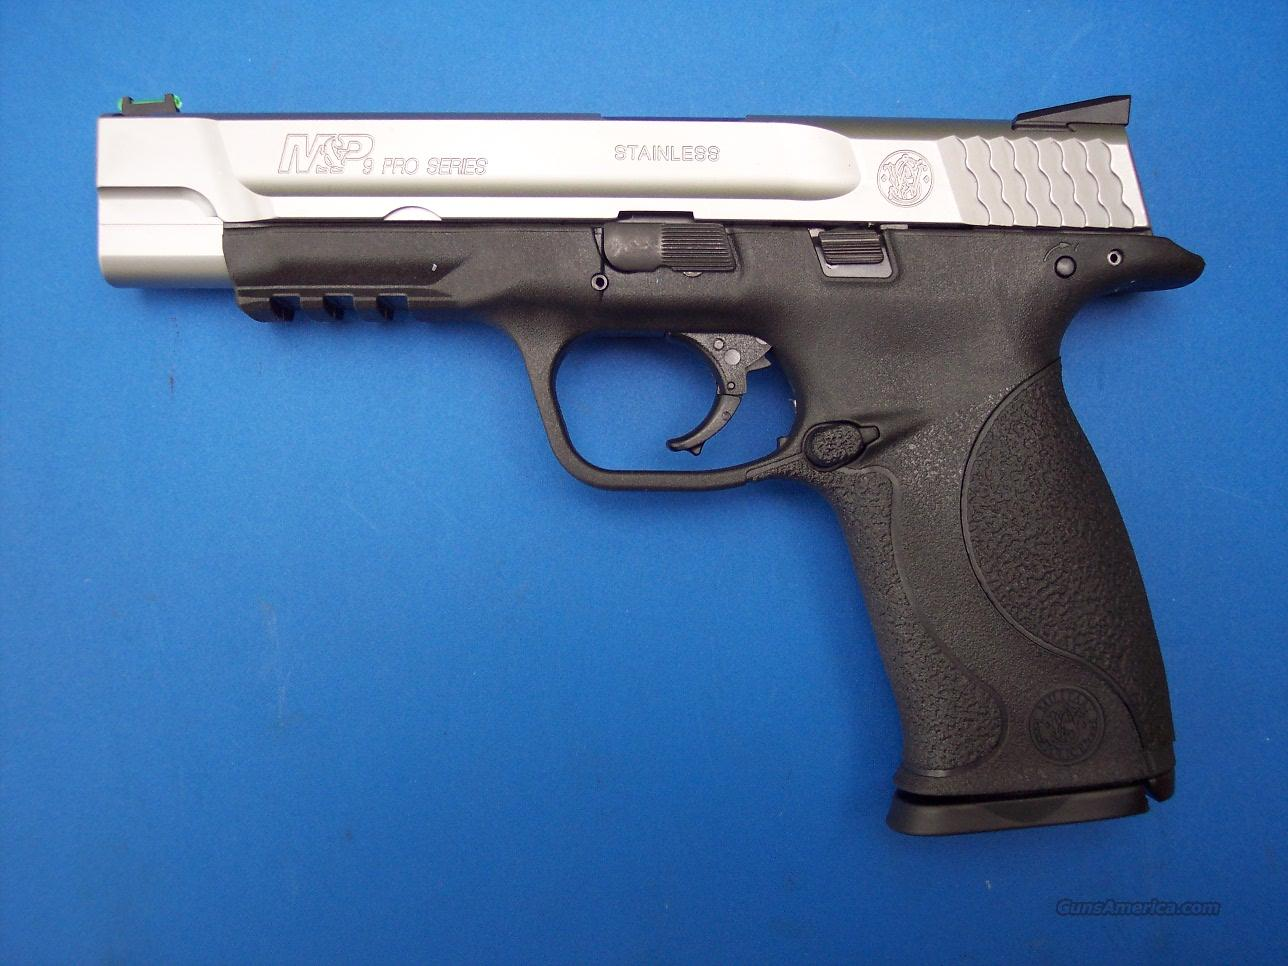 Smith & Wesson M&P 2 Tone Pro Series 9mm *NEW*  Guns > Pistols > Smith & Wesson Pistols - Autos > Polymer Frame